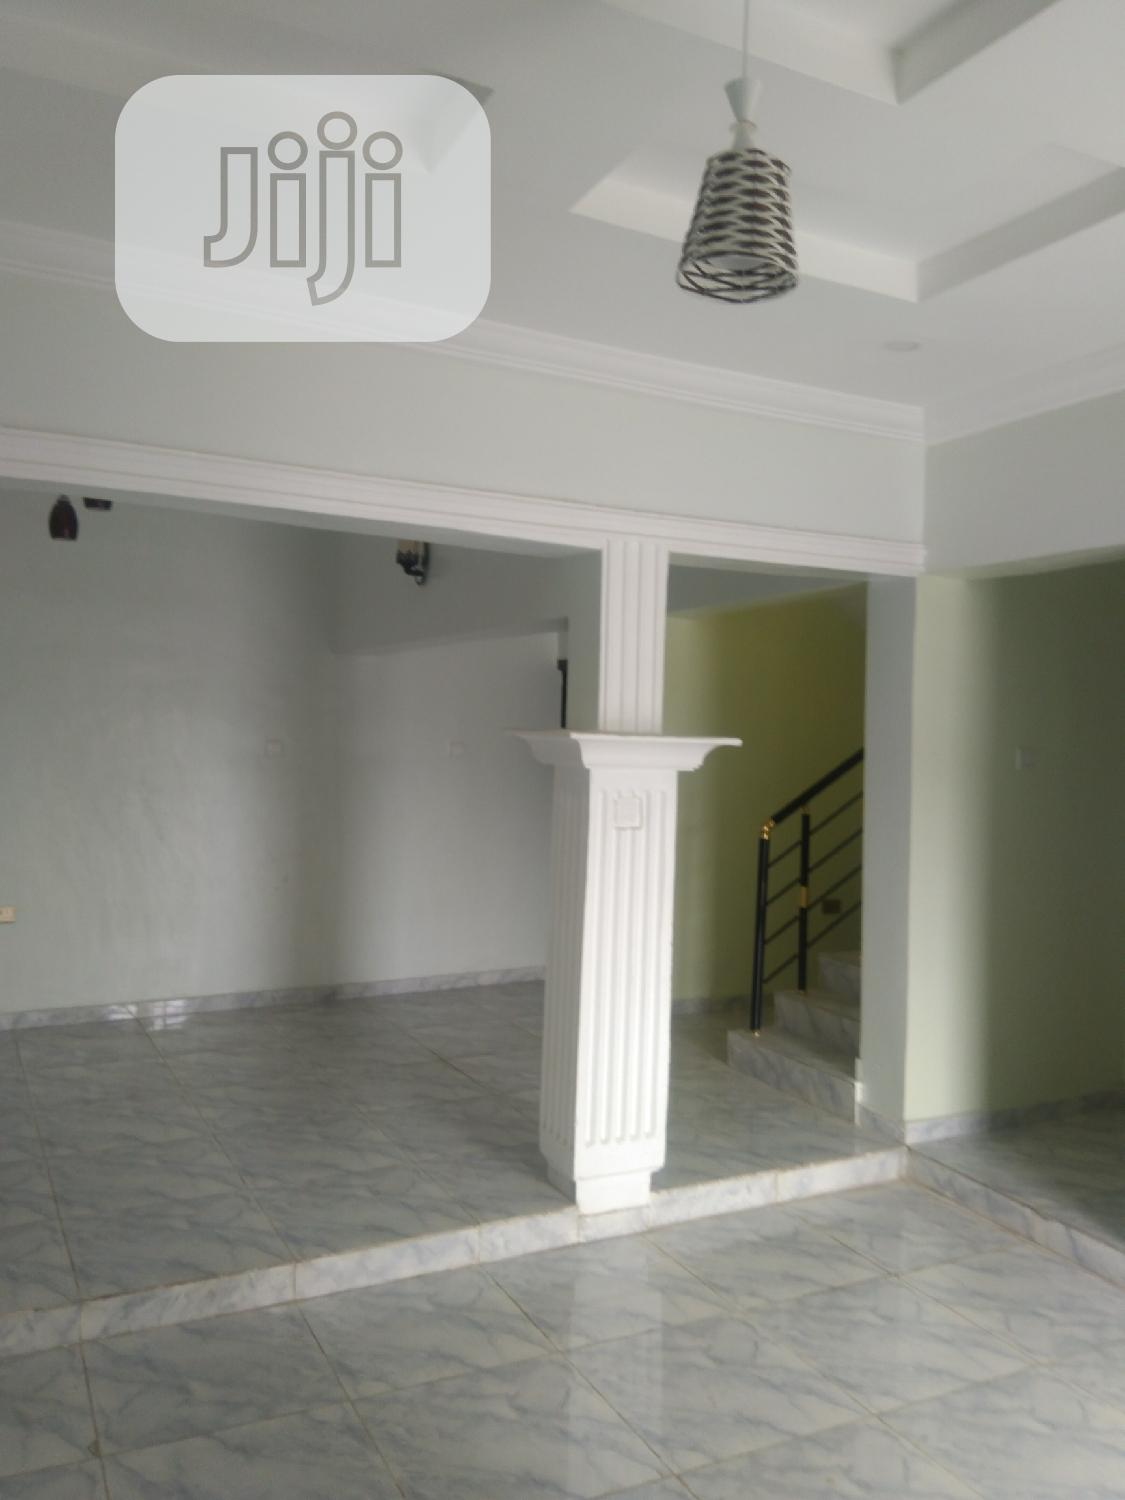 To Let Newly Built 5 Bedroom Duplex Ogba | Houses & Apartments For Rent for sale in Ikeja, Lagos State, Nigeria